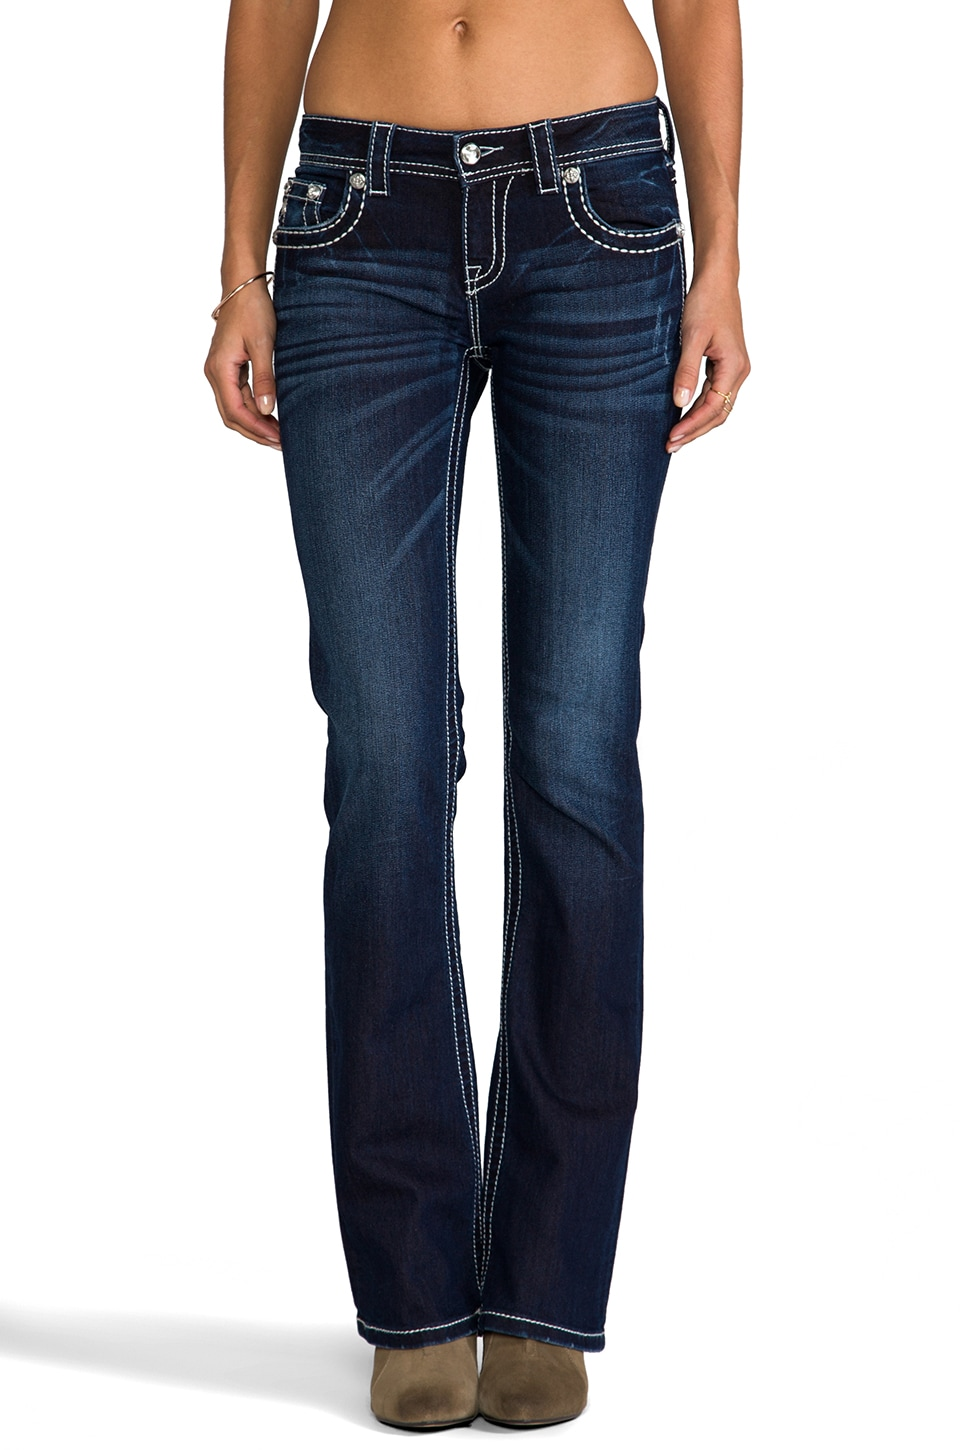 Miss Me Jeans Bootcut in DK212